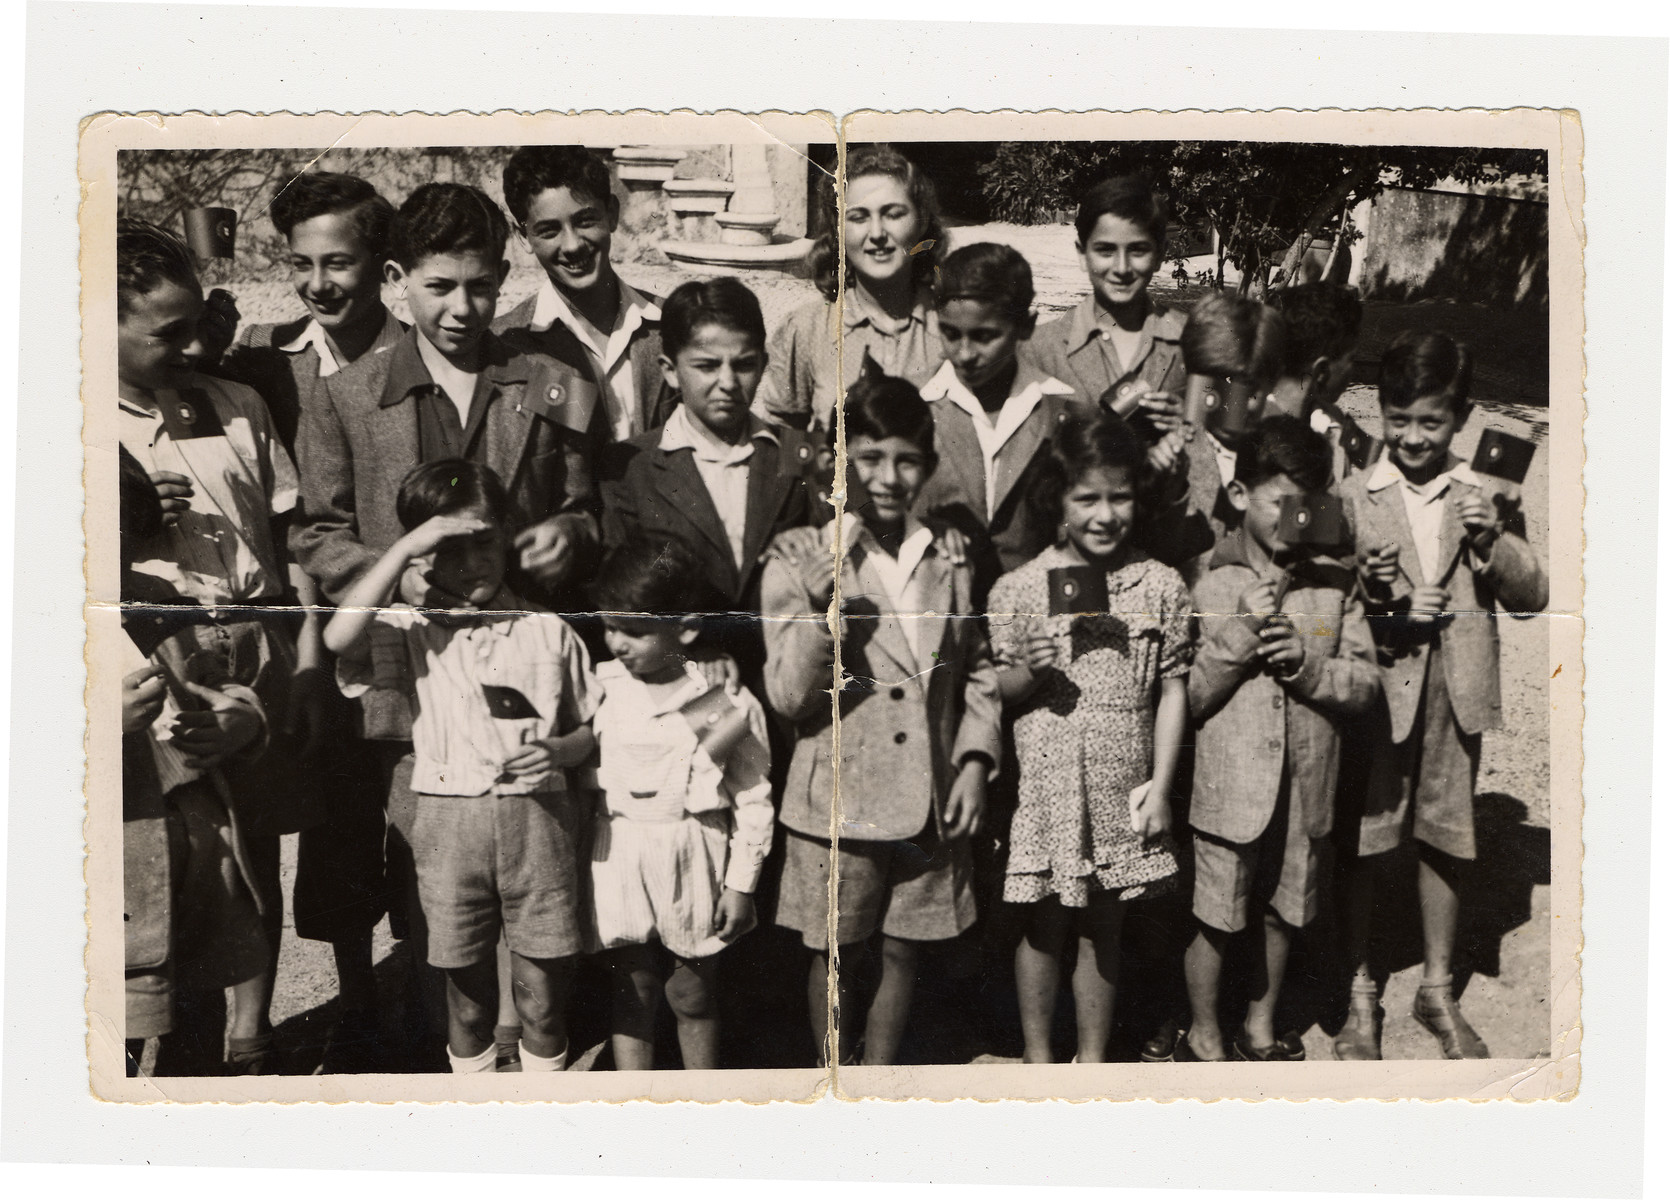 Group portrait of Jewish children in Lisbon where they are waiting to immigrate to the United States.  Manfred Manasse is pictured in the front row shading his eyes.  His brother Gustav is pictured on the far left.